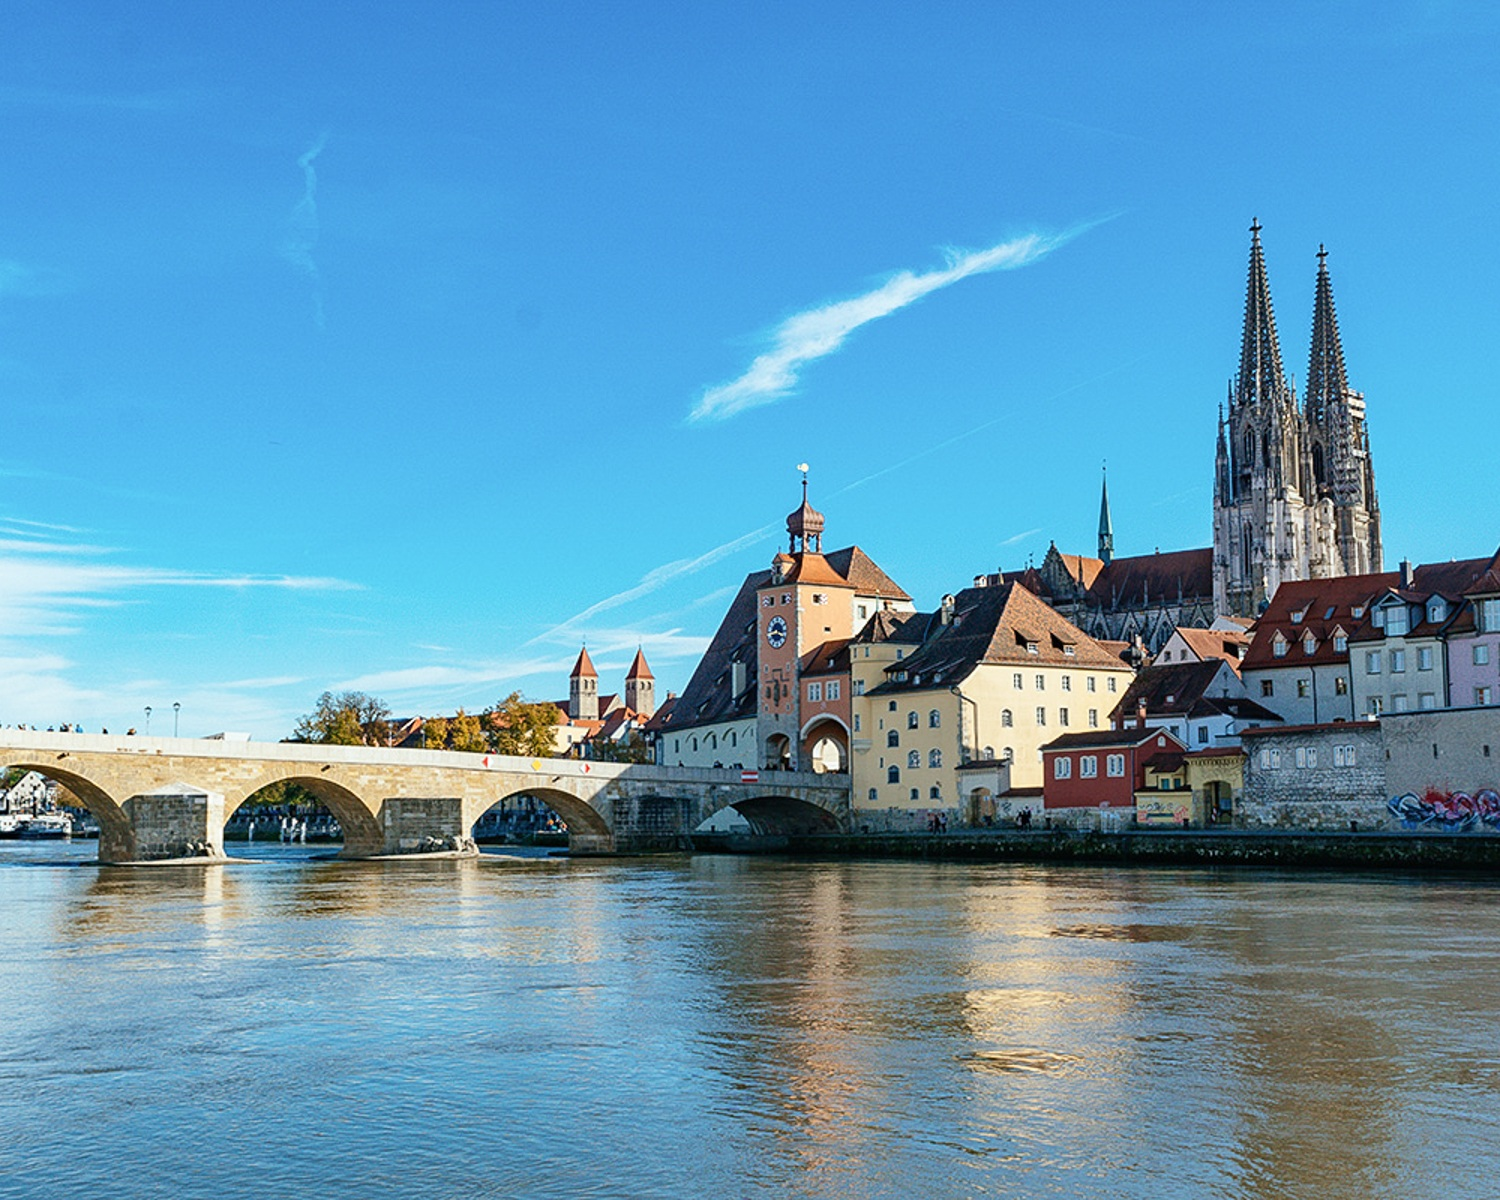 Regensburg and the Old Maine Bridge Photo: Annees de Pelerinage